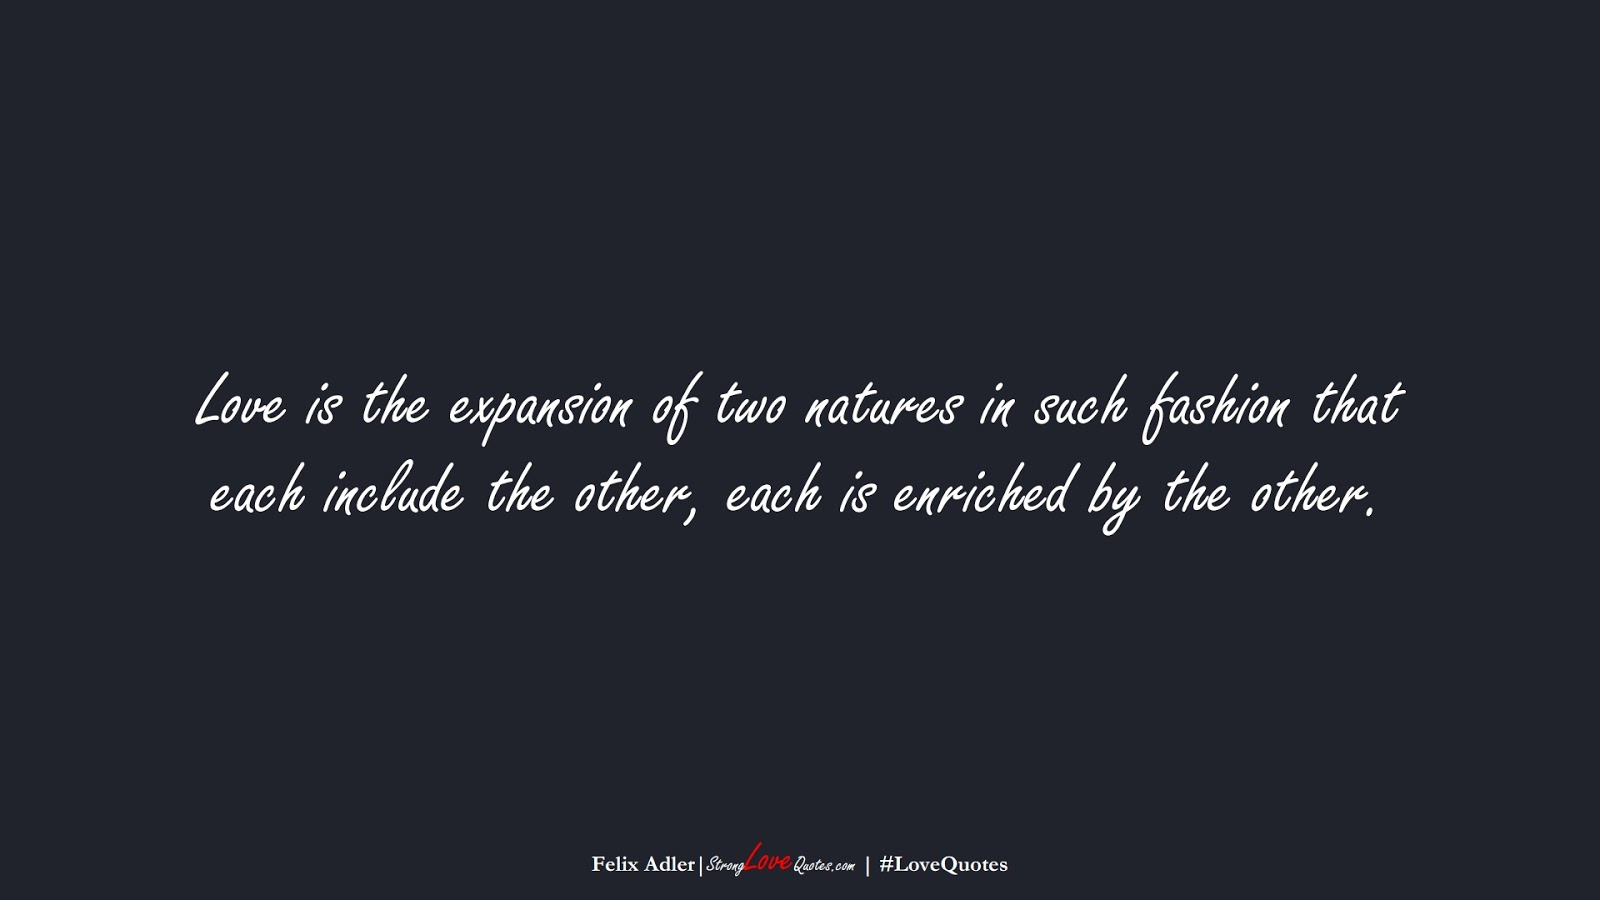 Love is the expansion of two natures in such fashion that each include the other, each is enriched by the other. (Felix Adler);  #LoveQuotes